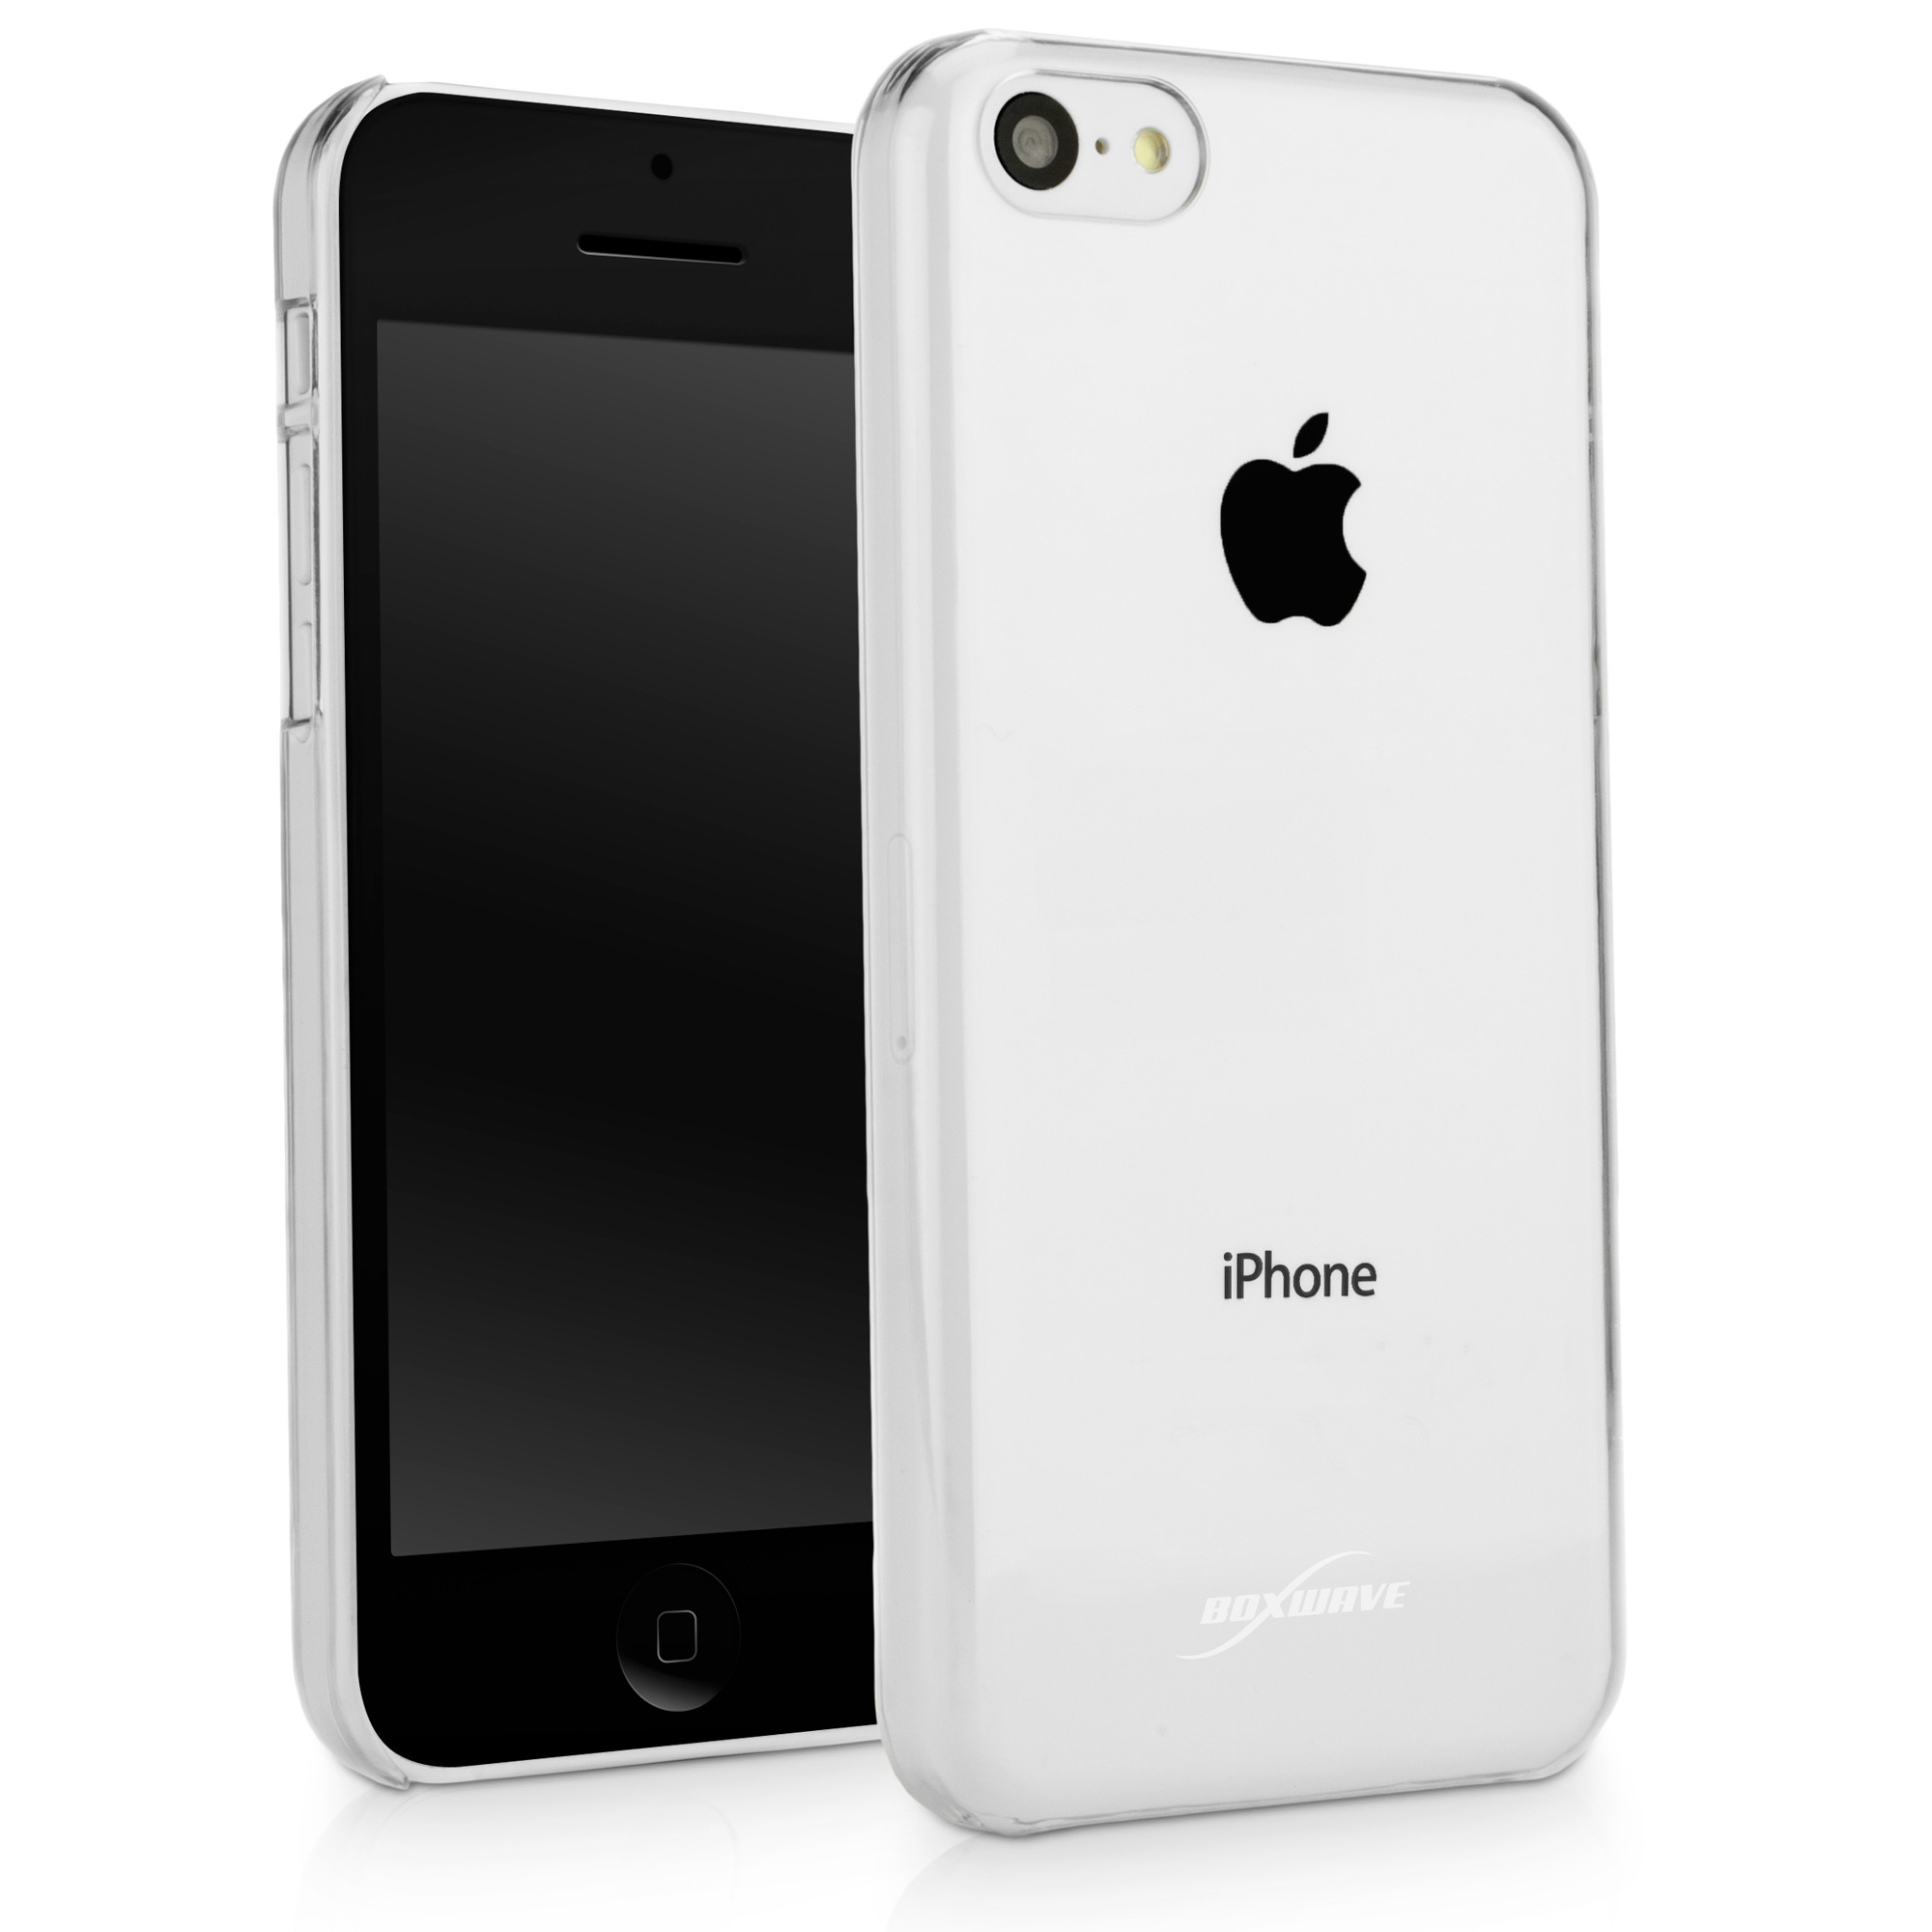 newest 5c694 b98c7 BoxWave® Introduces New Accessories for the Apple iPhone 5c